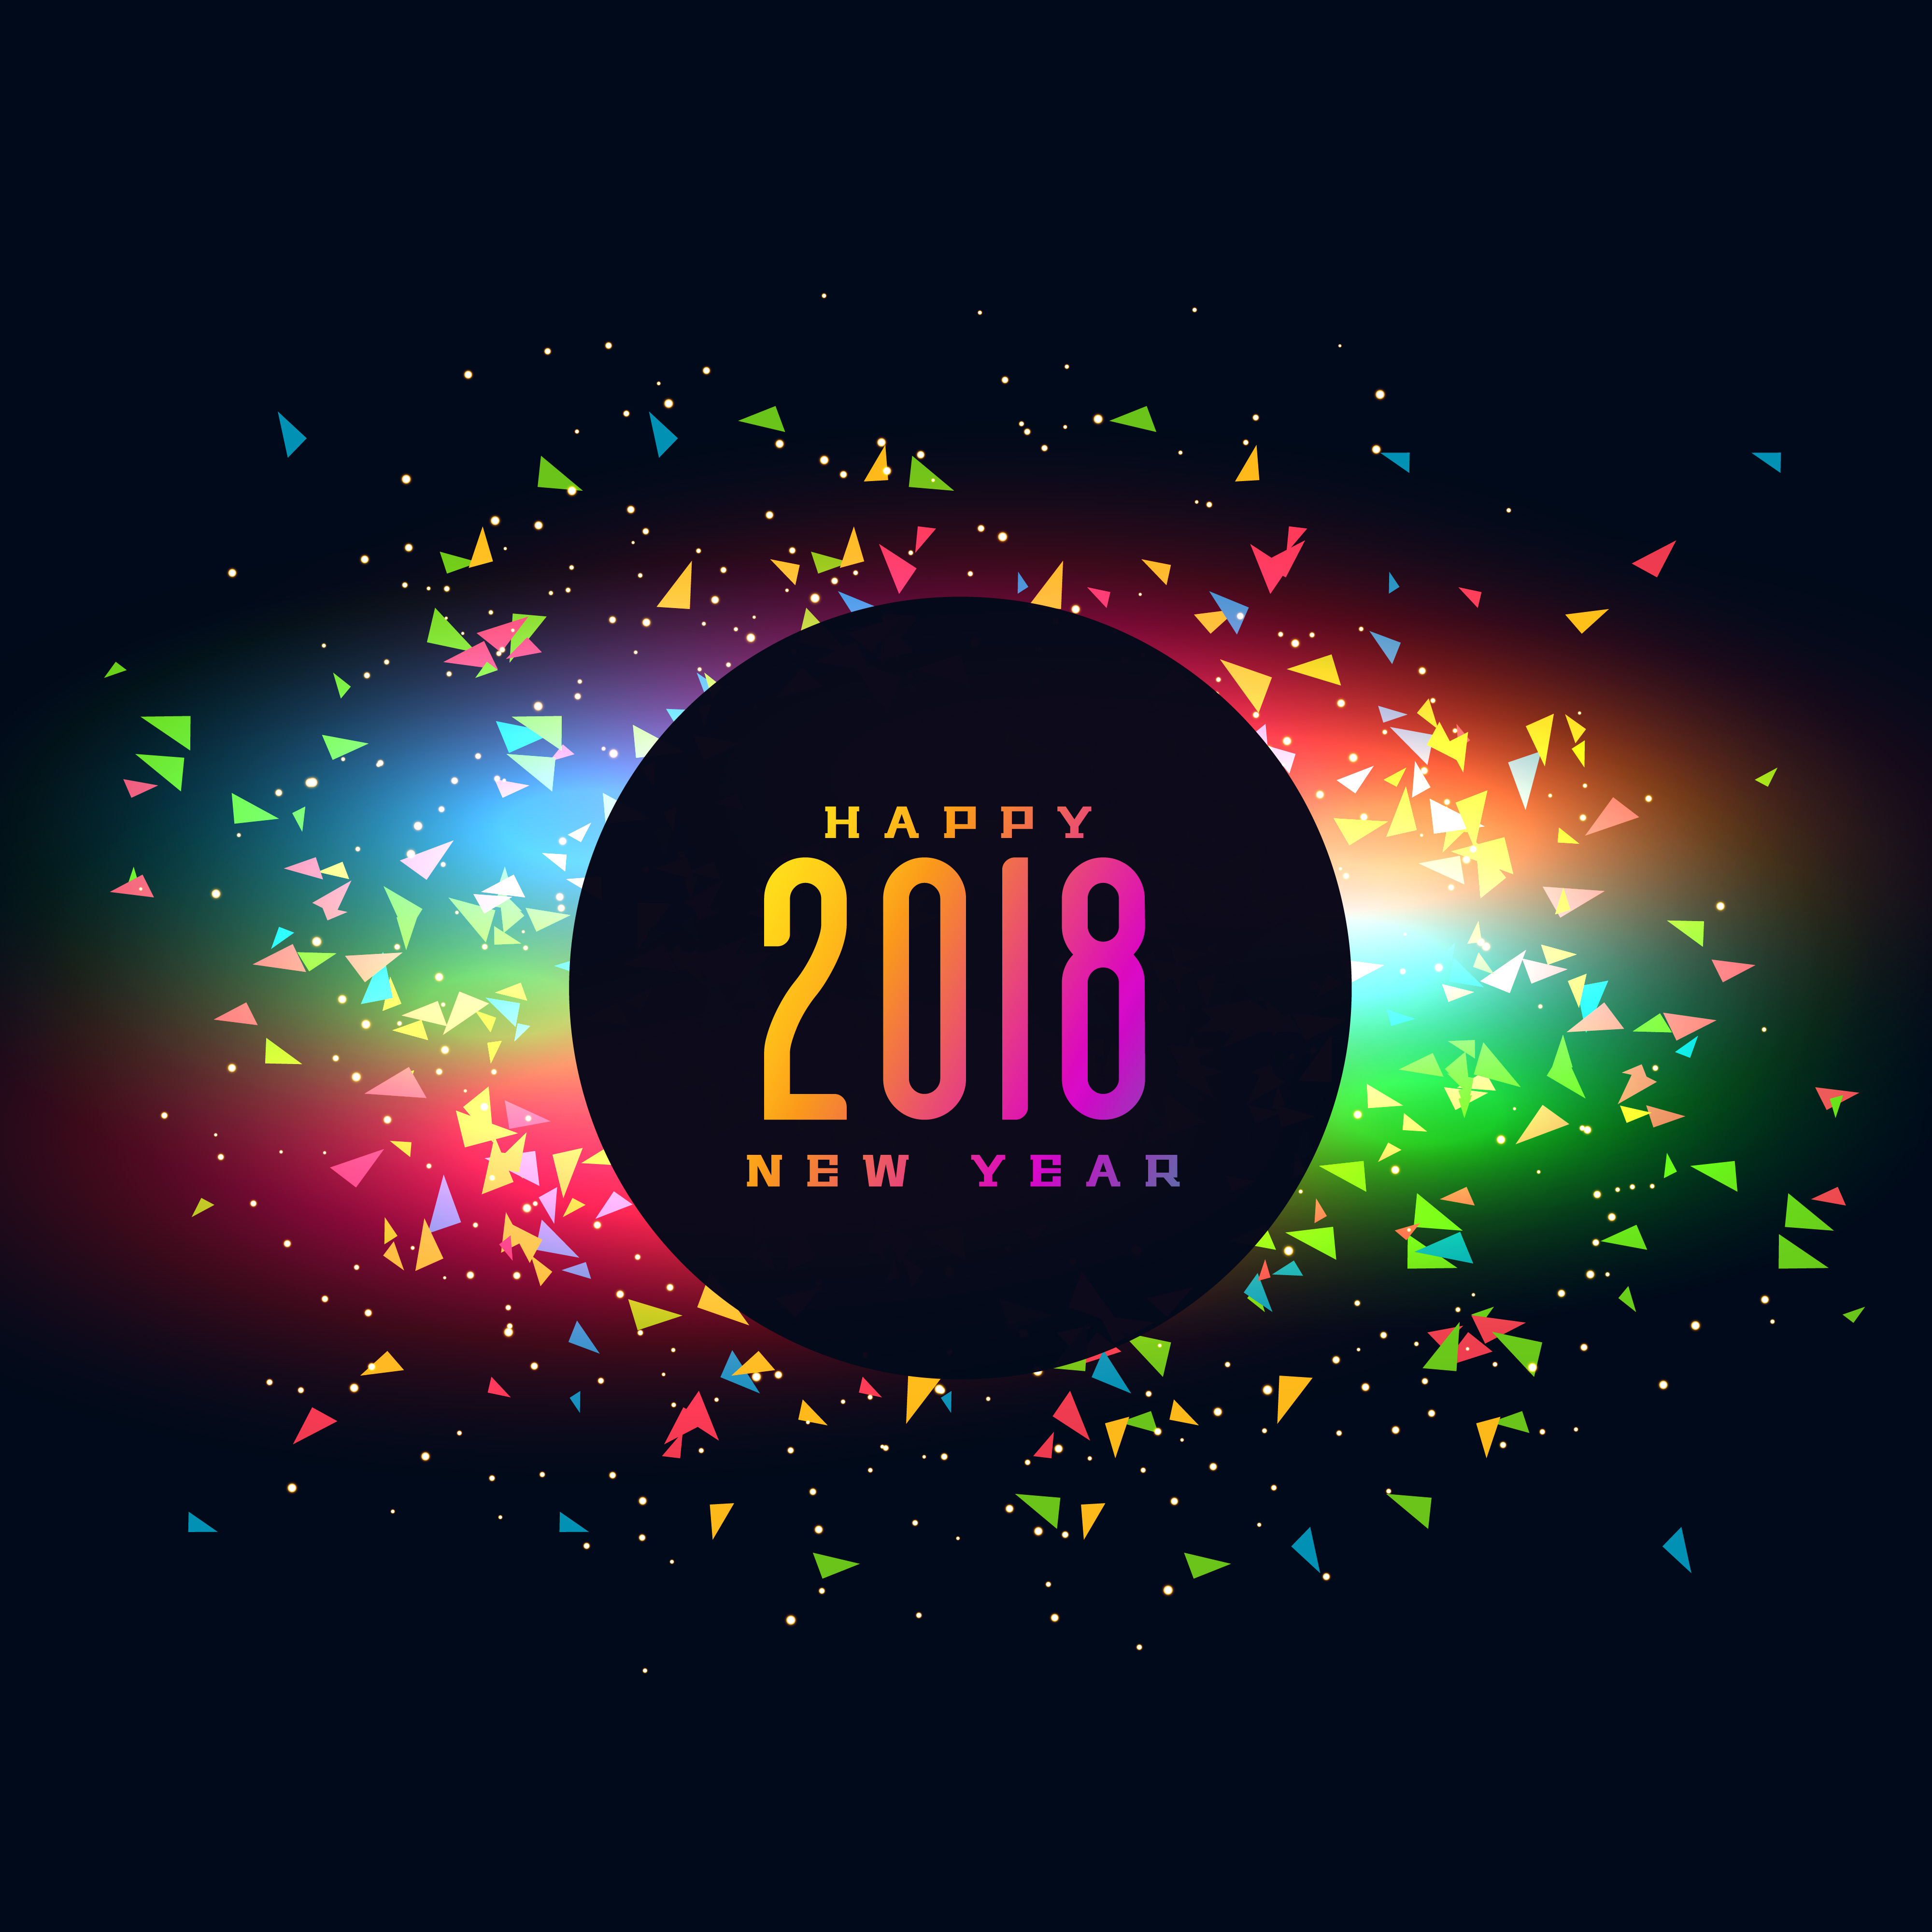 2018 happy new year colroful party background design download free vector art stock graphics images